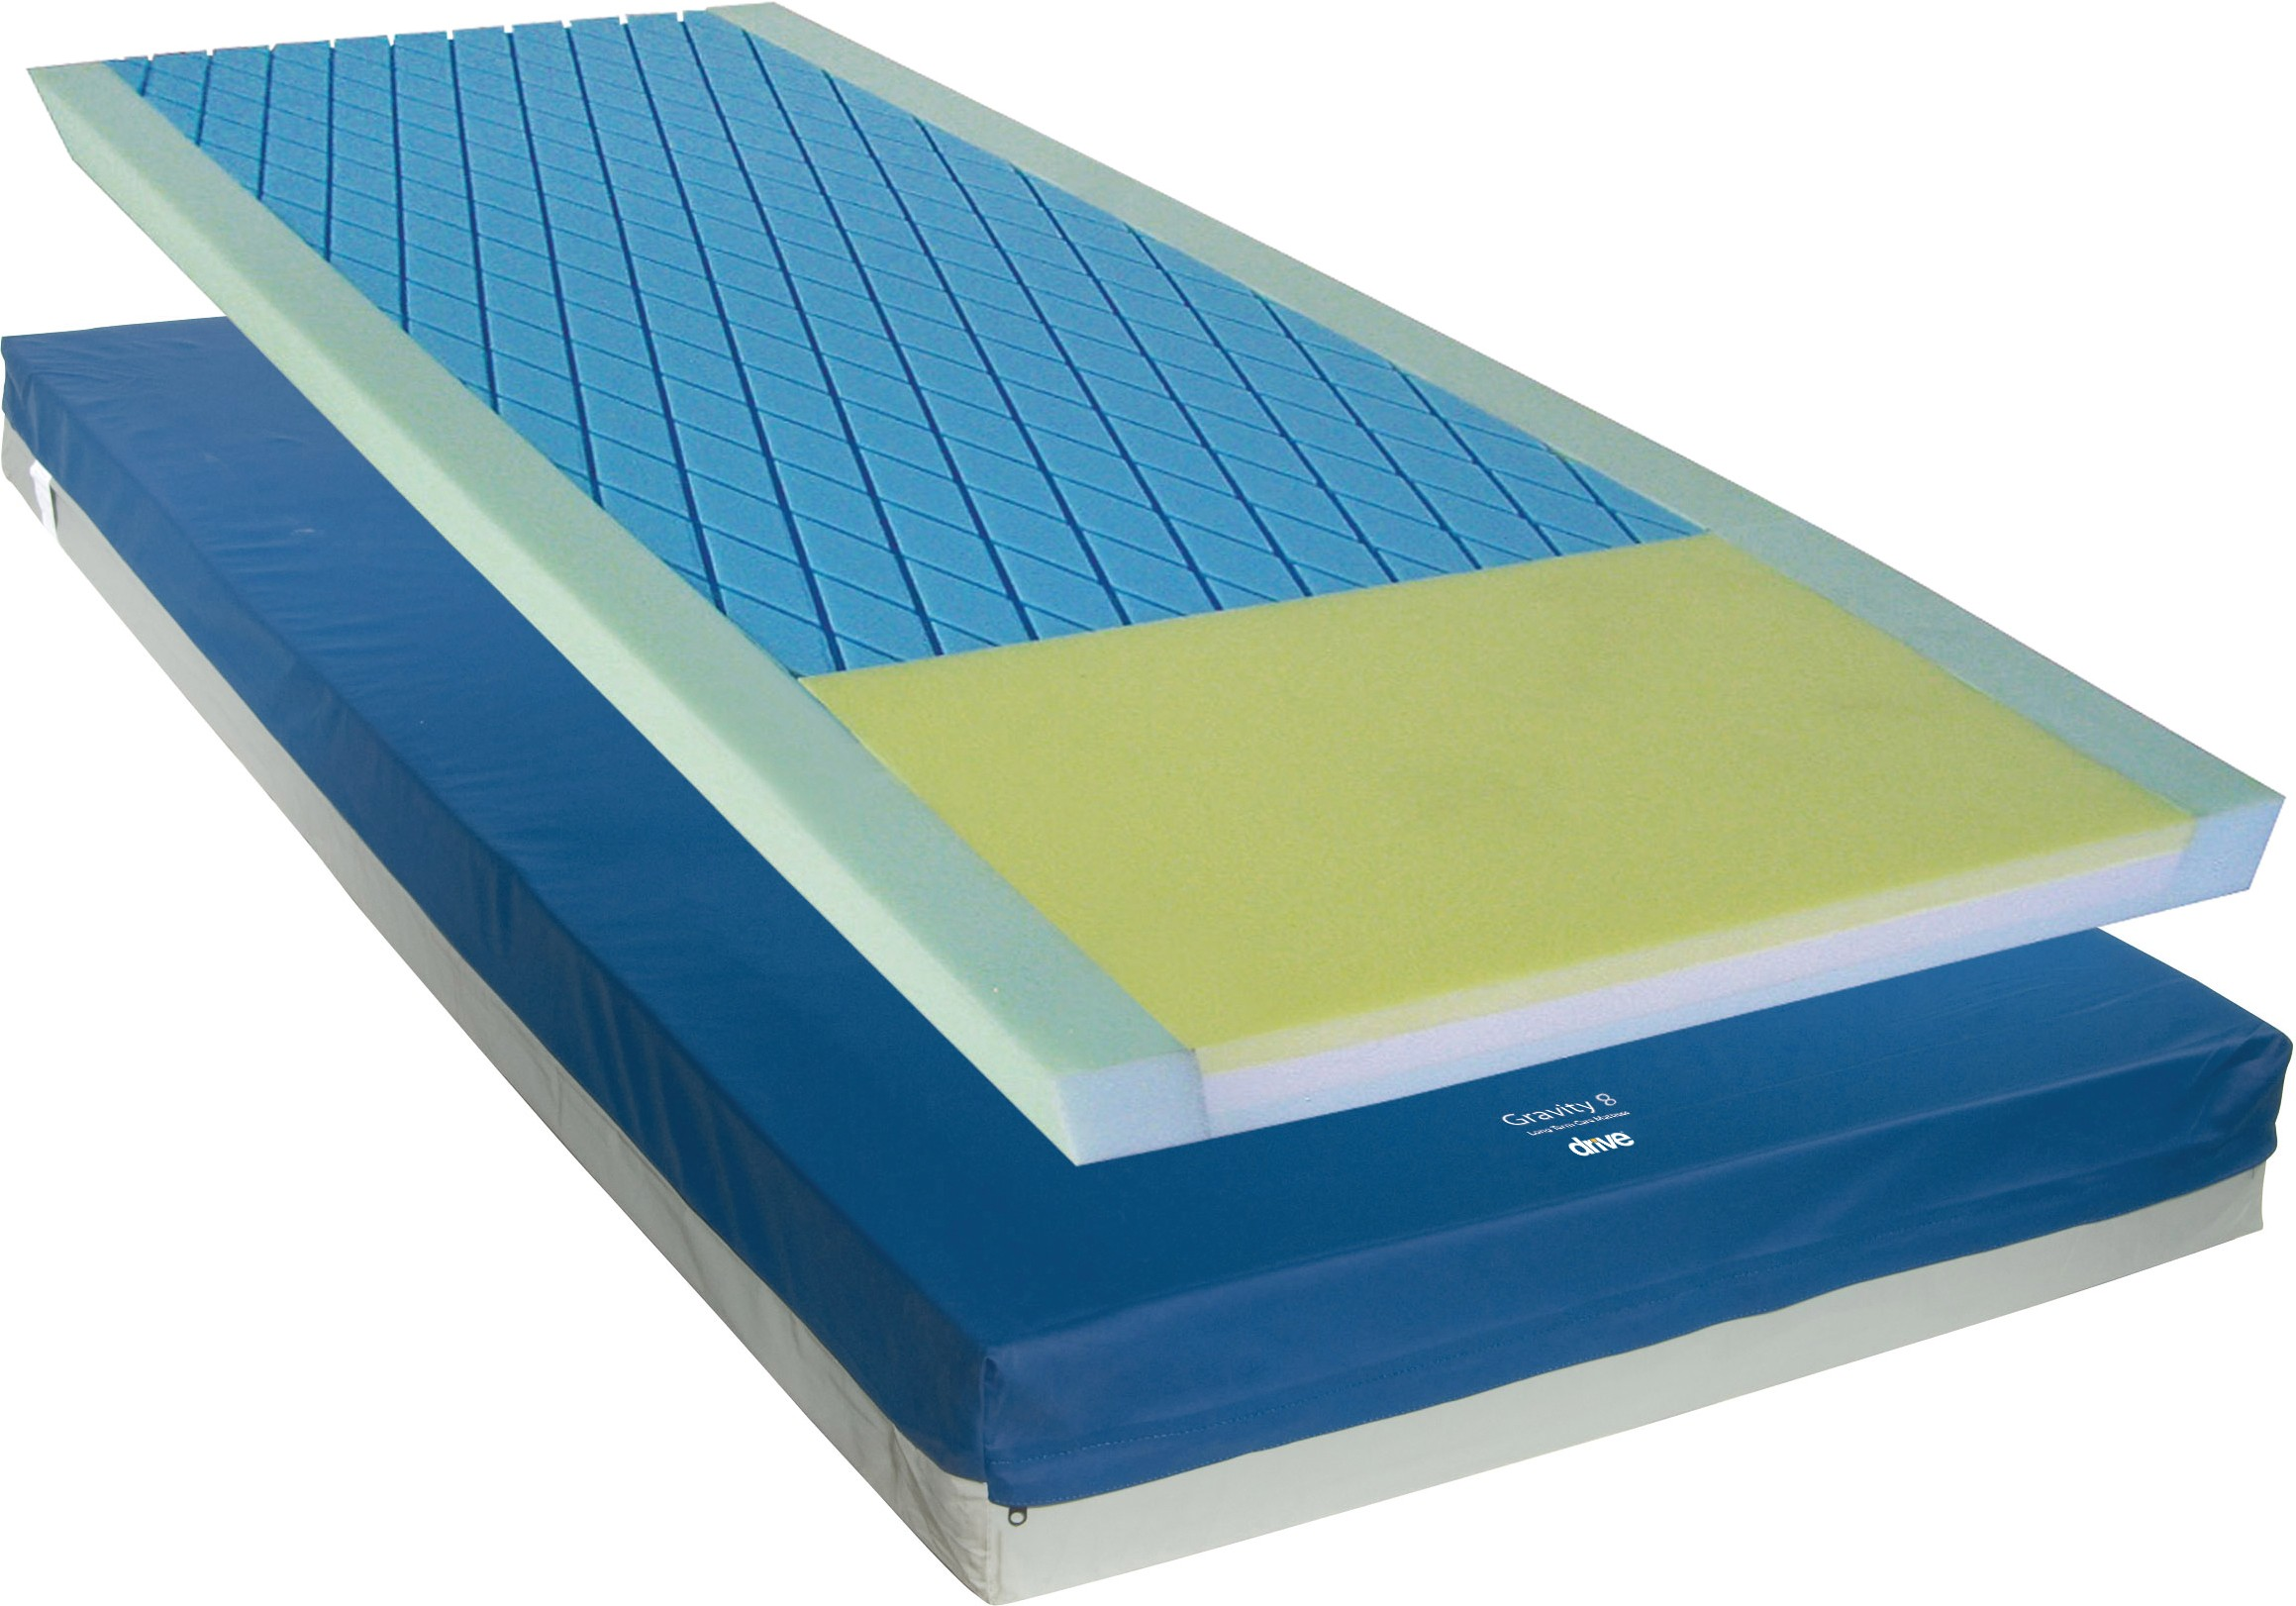 Gravity 8 Pressure Redistribution Mattress